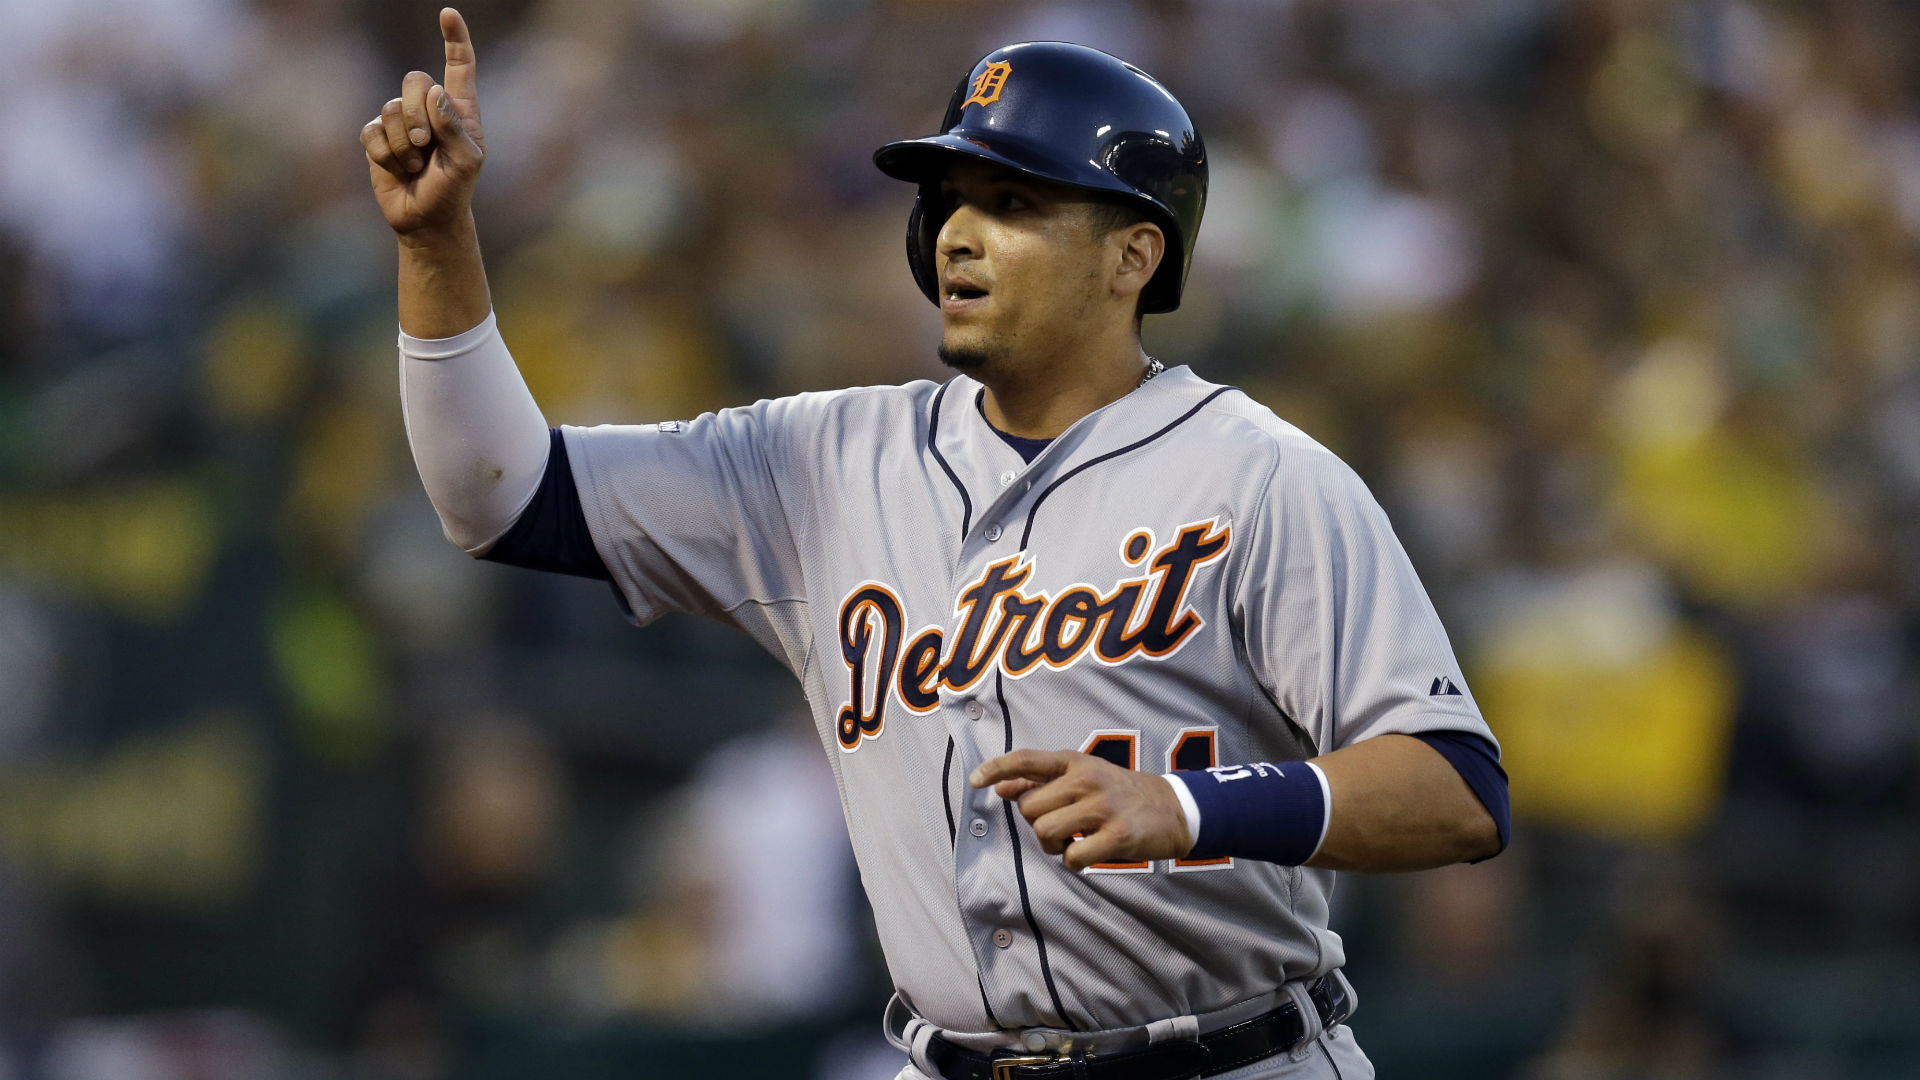 First base rankings: New Tiger occupying top spot